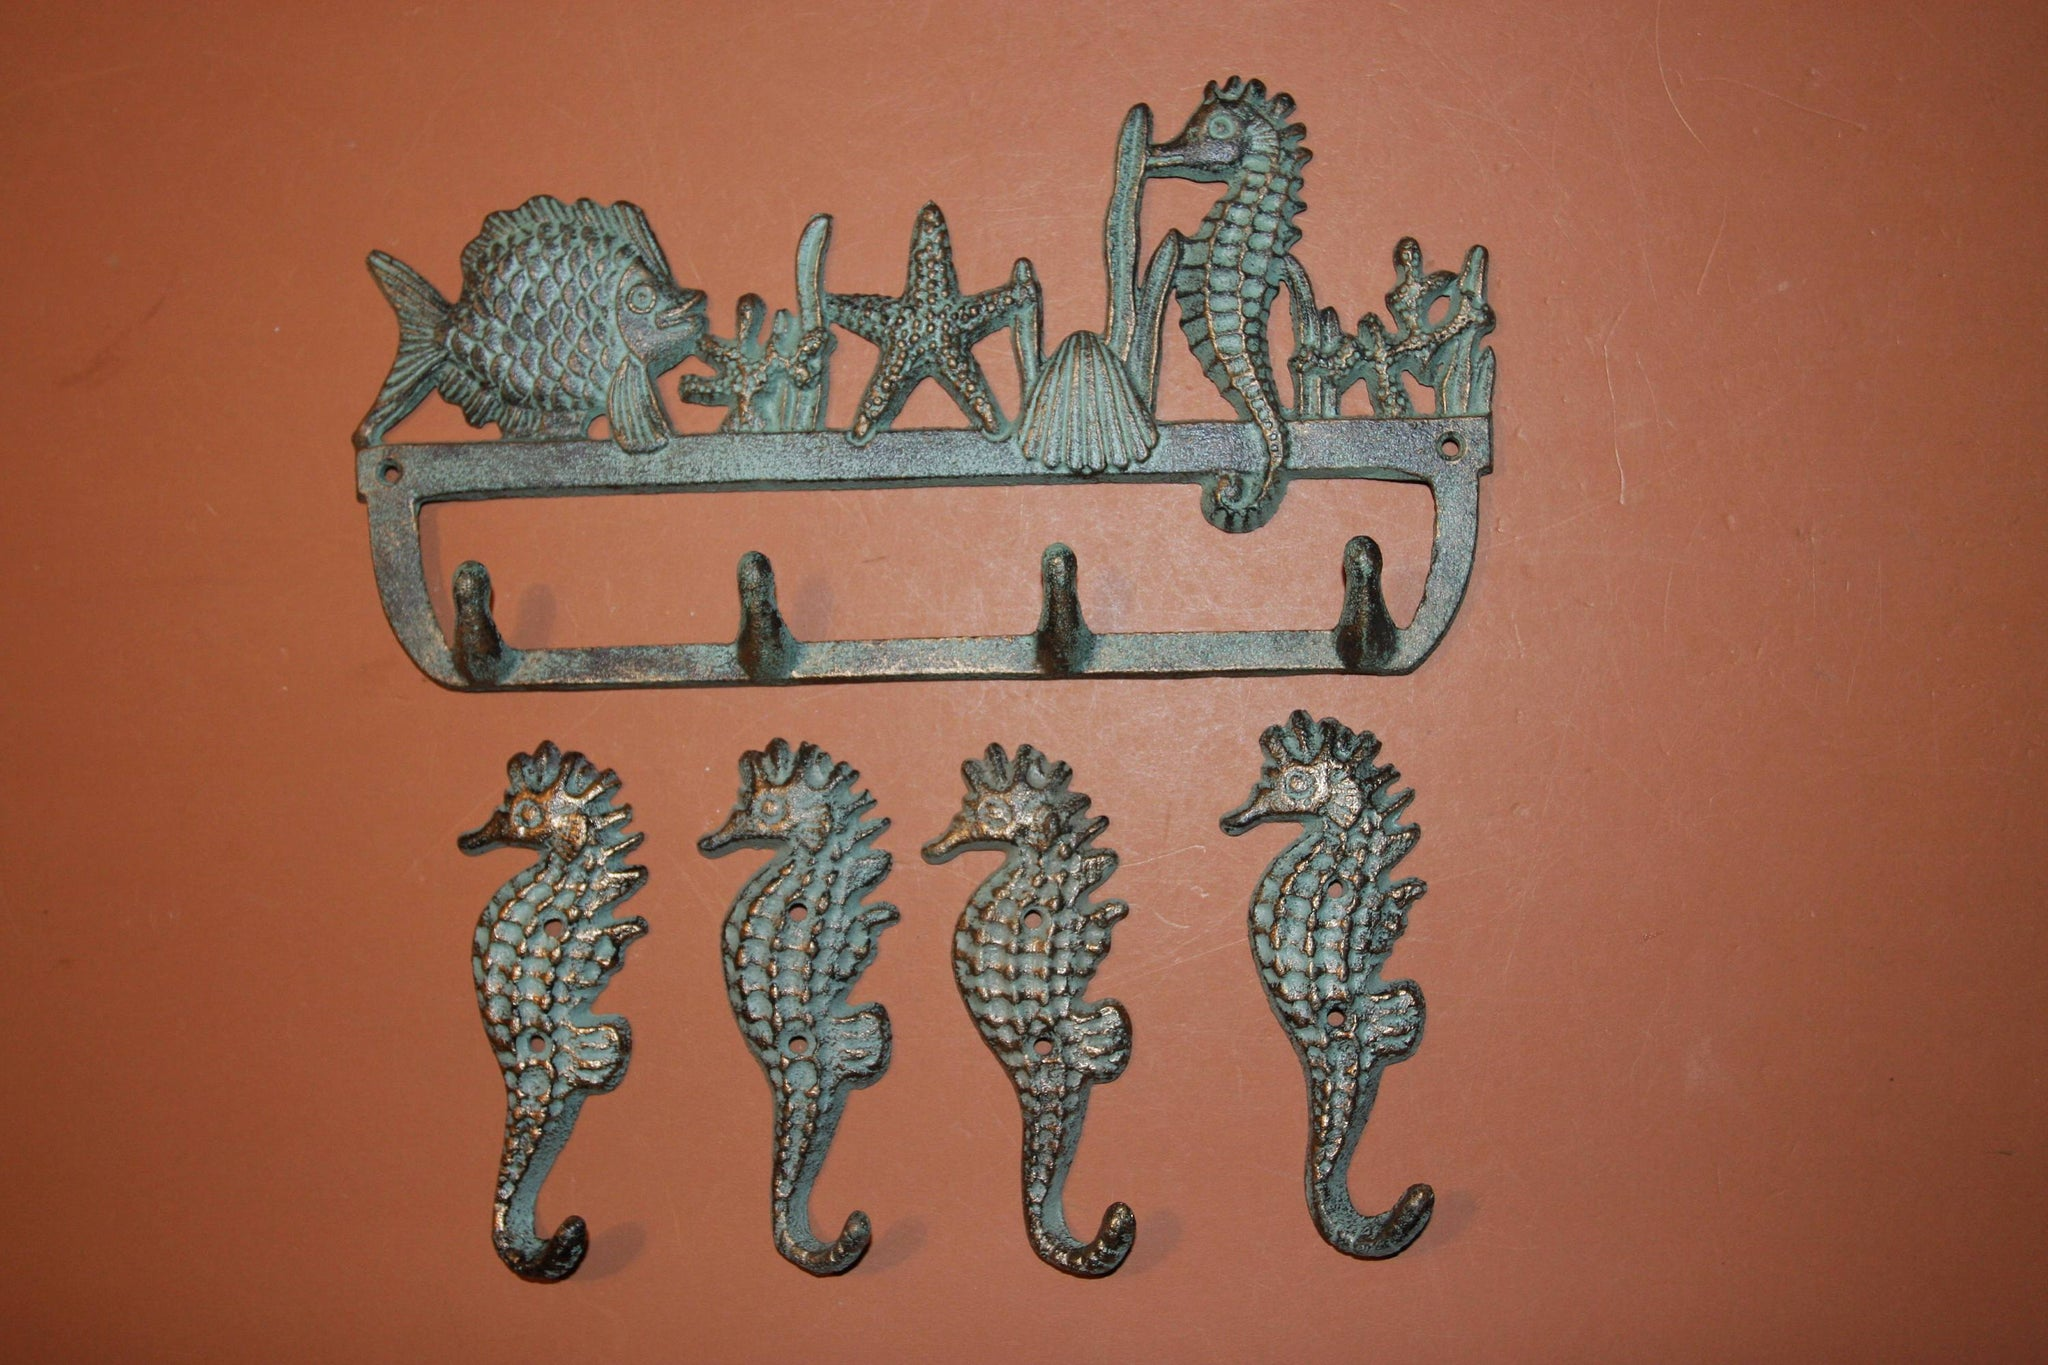 5), Vintage-look Coastal Living Beach Bathroom Towel Hook Set of 5, Free Shipping, Cast Iron Bronze-look, Towel Hooks, H-34,N-25